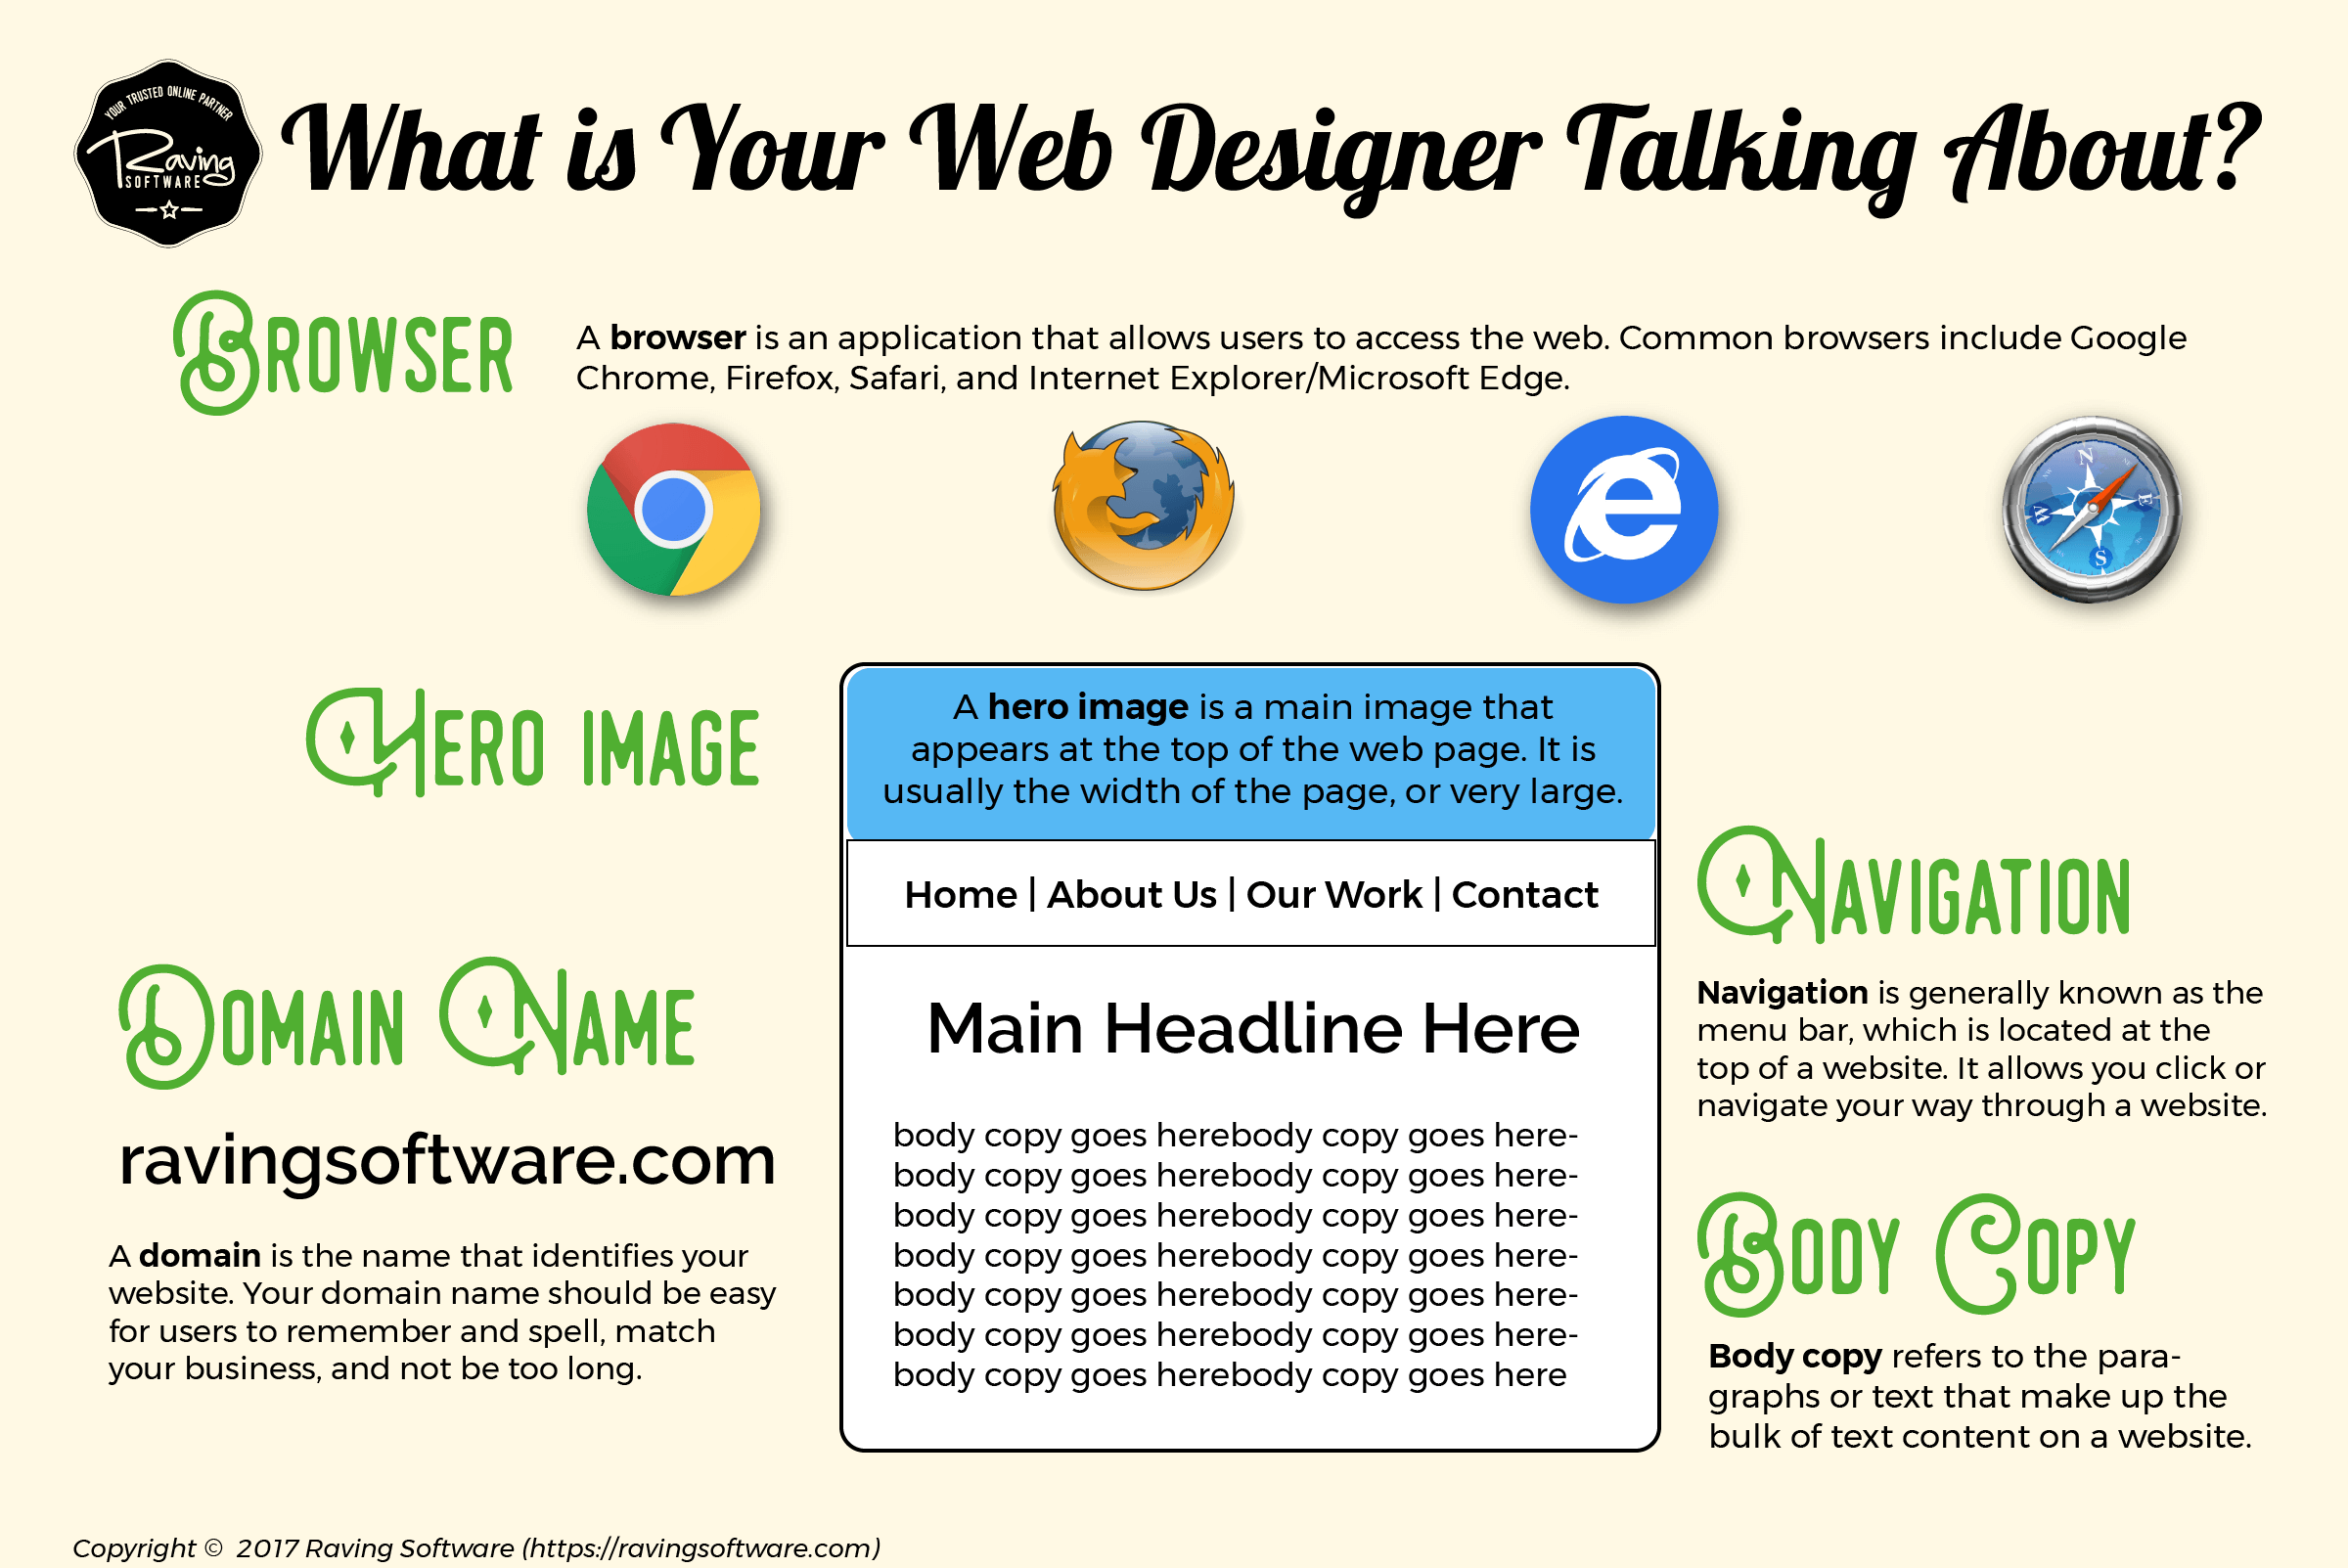 Learn web designer jargon and improve your communications in the web design process